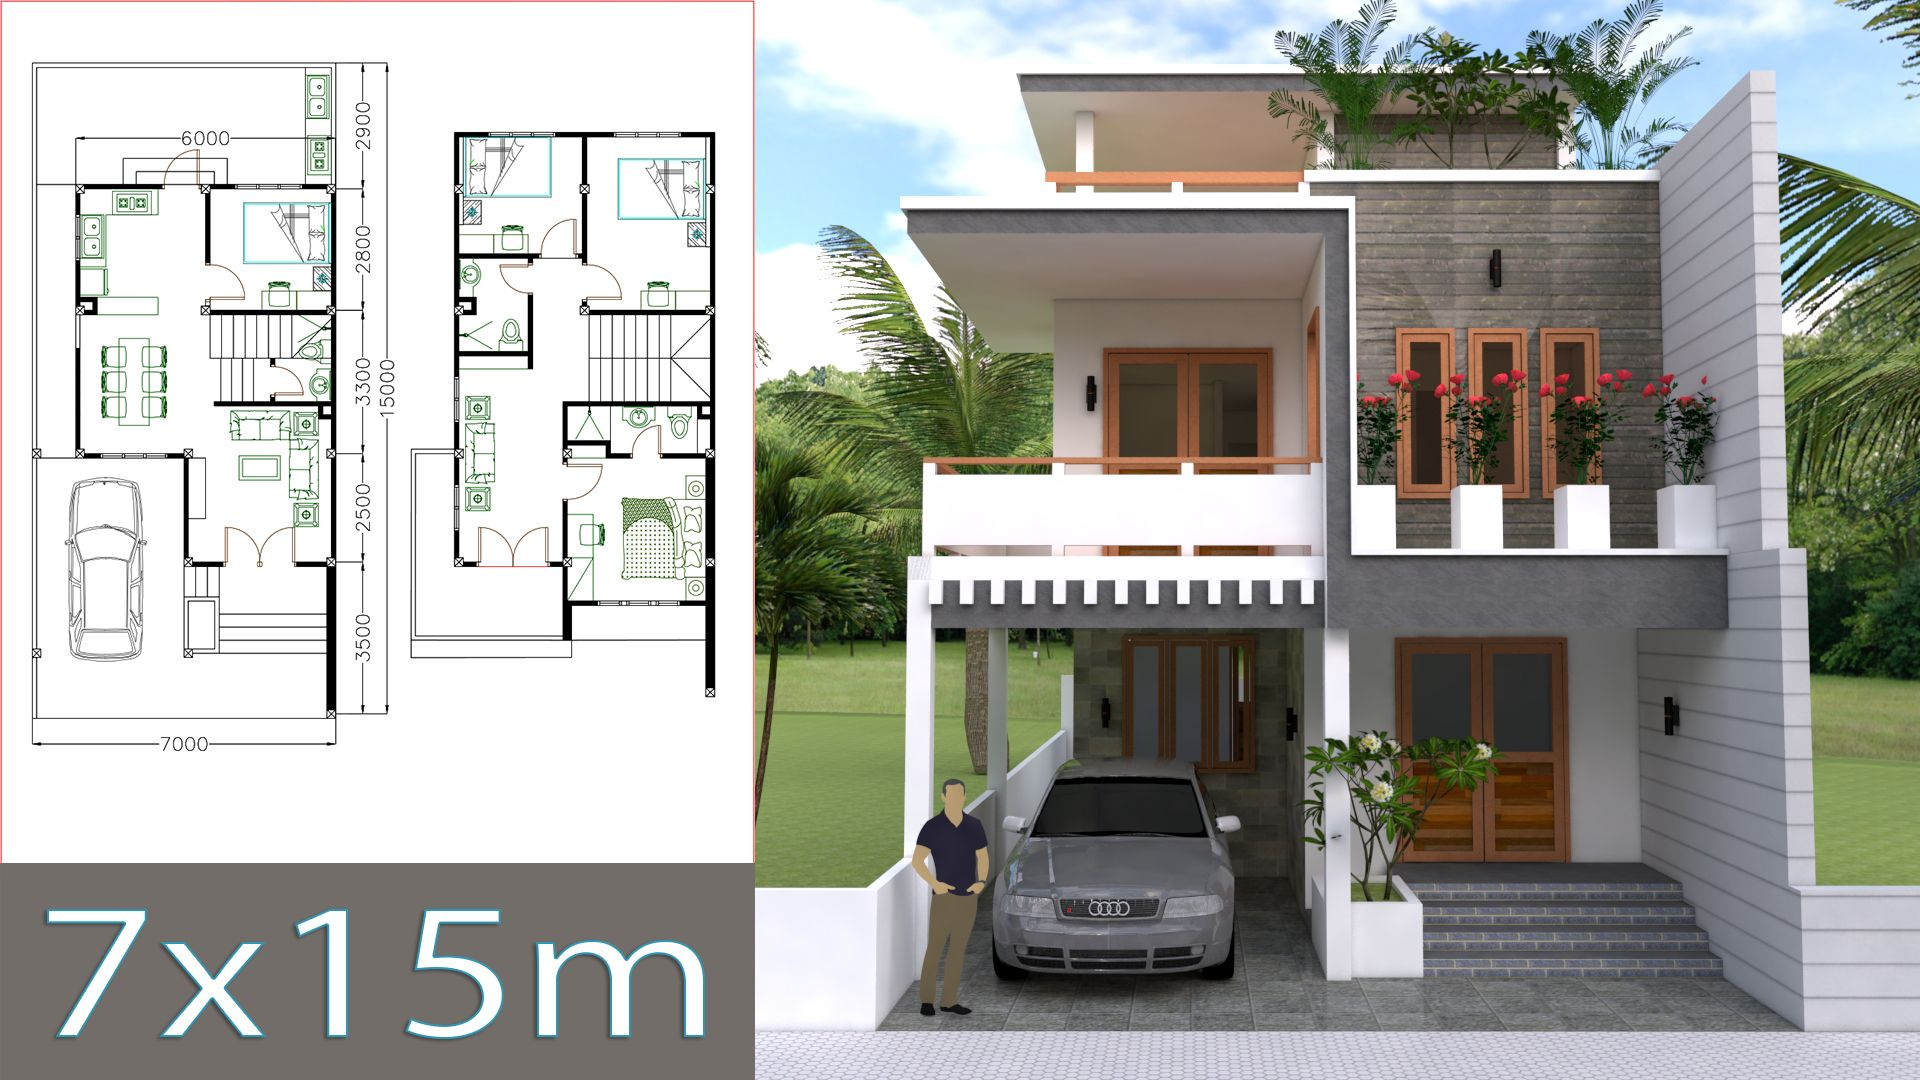 Home Design Plan 7x15m With 4 Bedrooms Small House Design